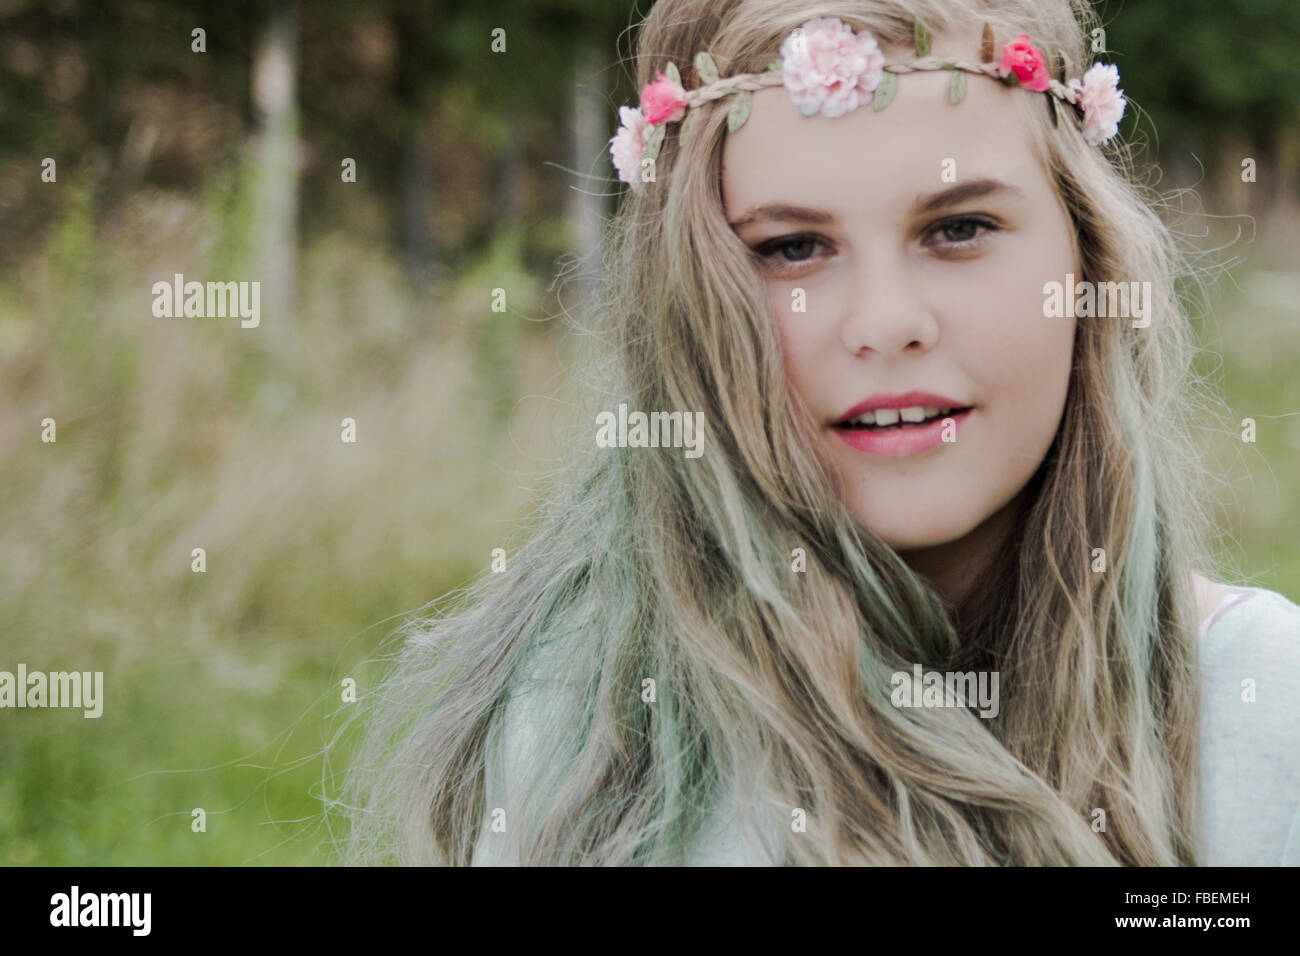 Portrait Of Beautiful Woman At Park - Stock Image